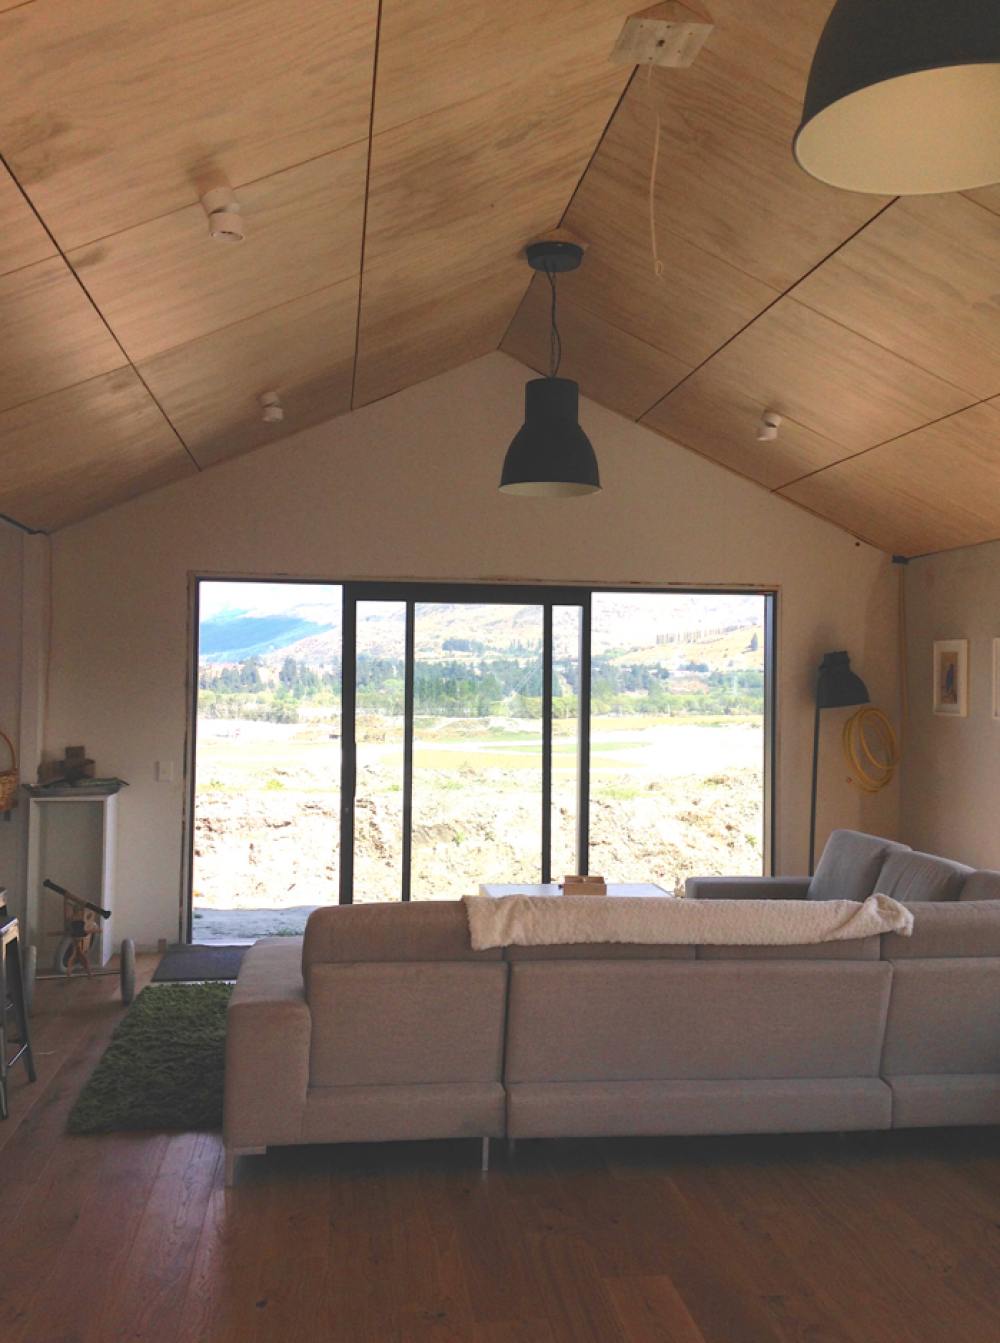 ply, plywood, blonded, living room, building nz , buildme.co.nz